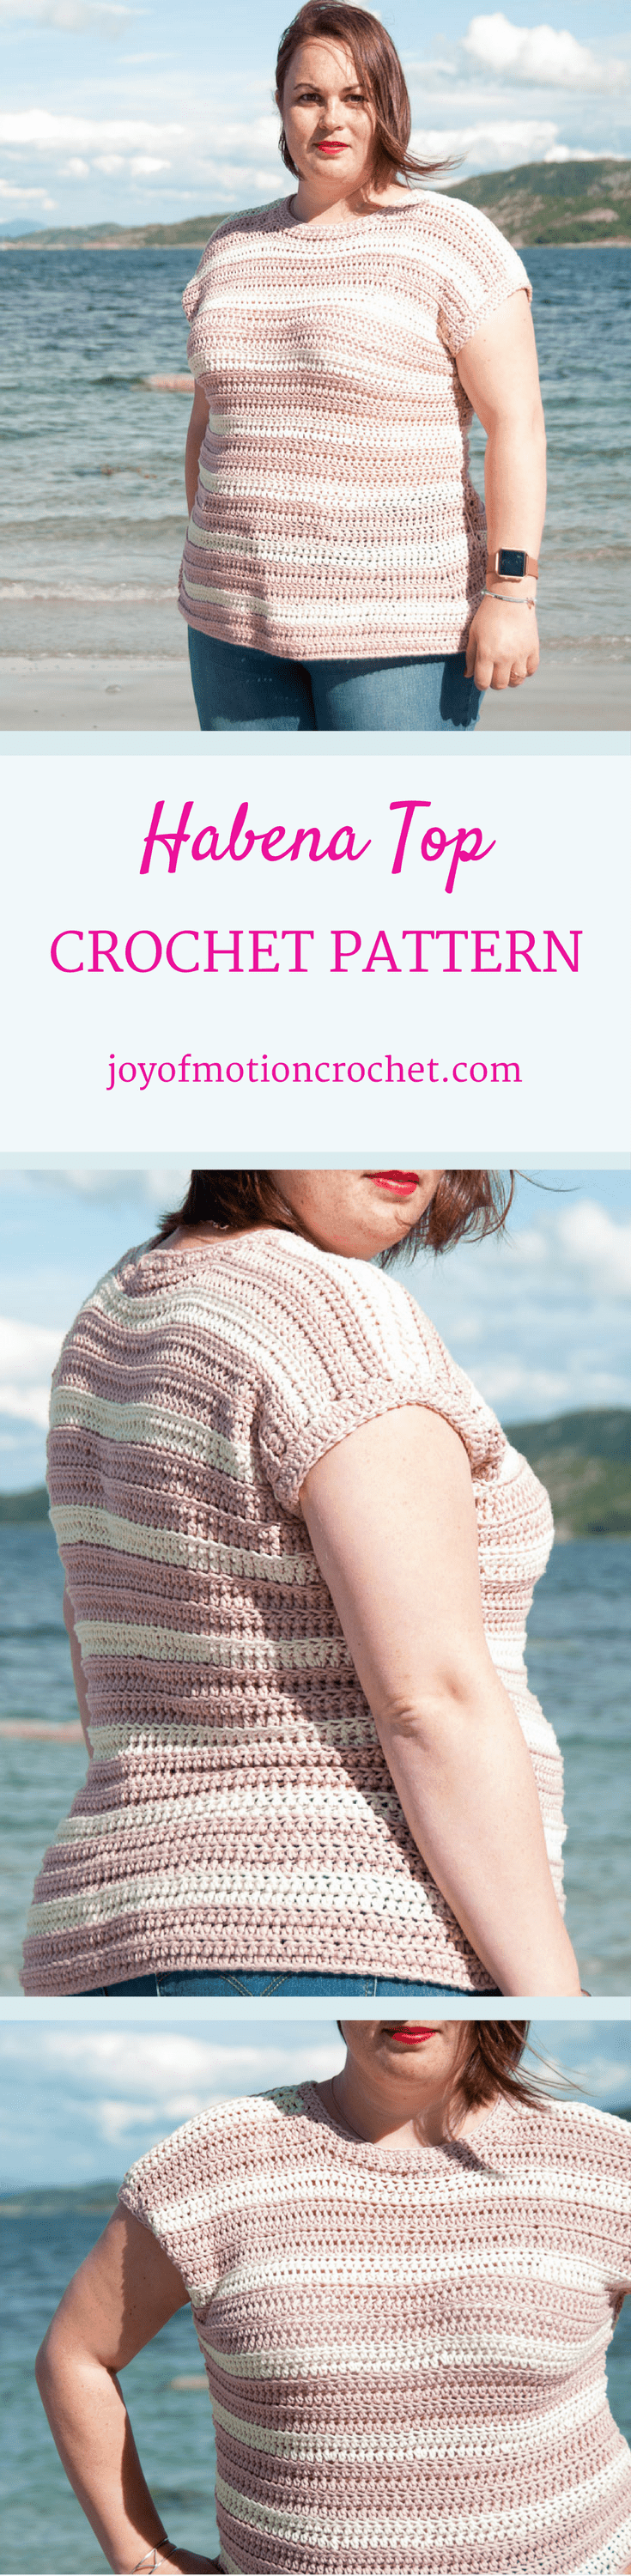 Habena top crochet pattern. Crochet top plus size. Crochet top striped. Crochet top shirt. T-shirt crochet pattern. #crochettop #crochetpattern #intermediatecrochet #crochetpatterntop #crochetpatternforher